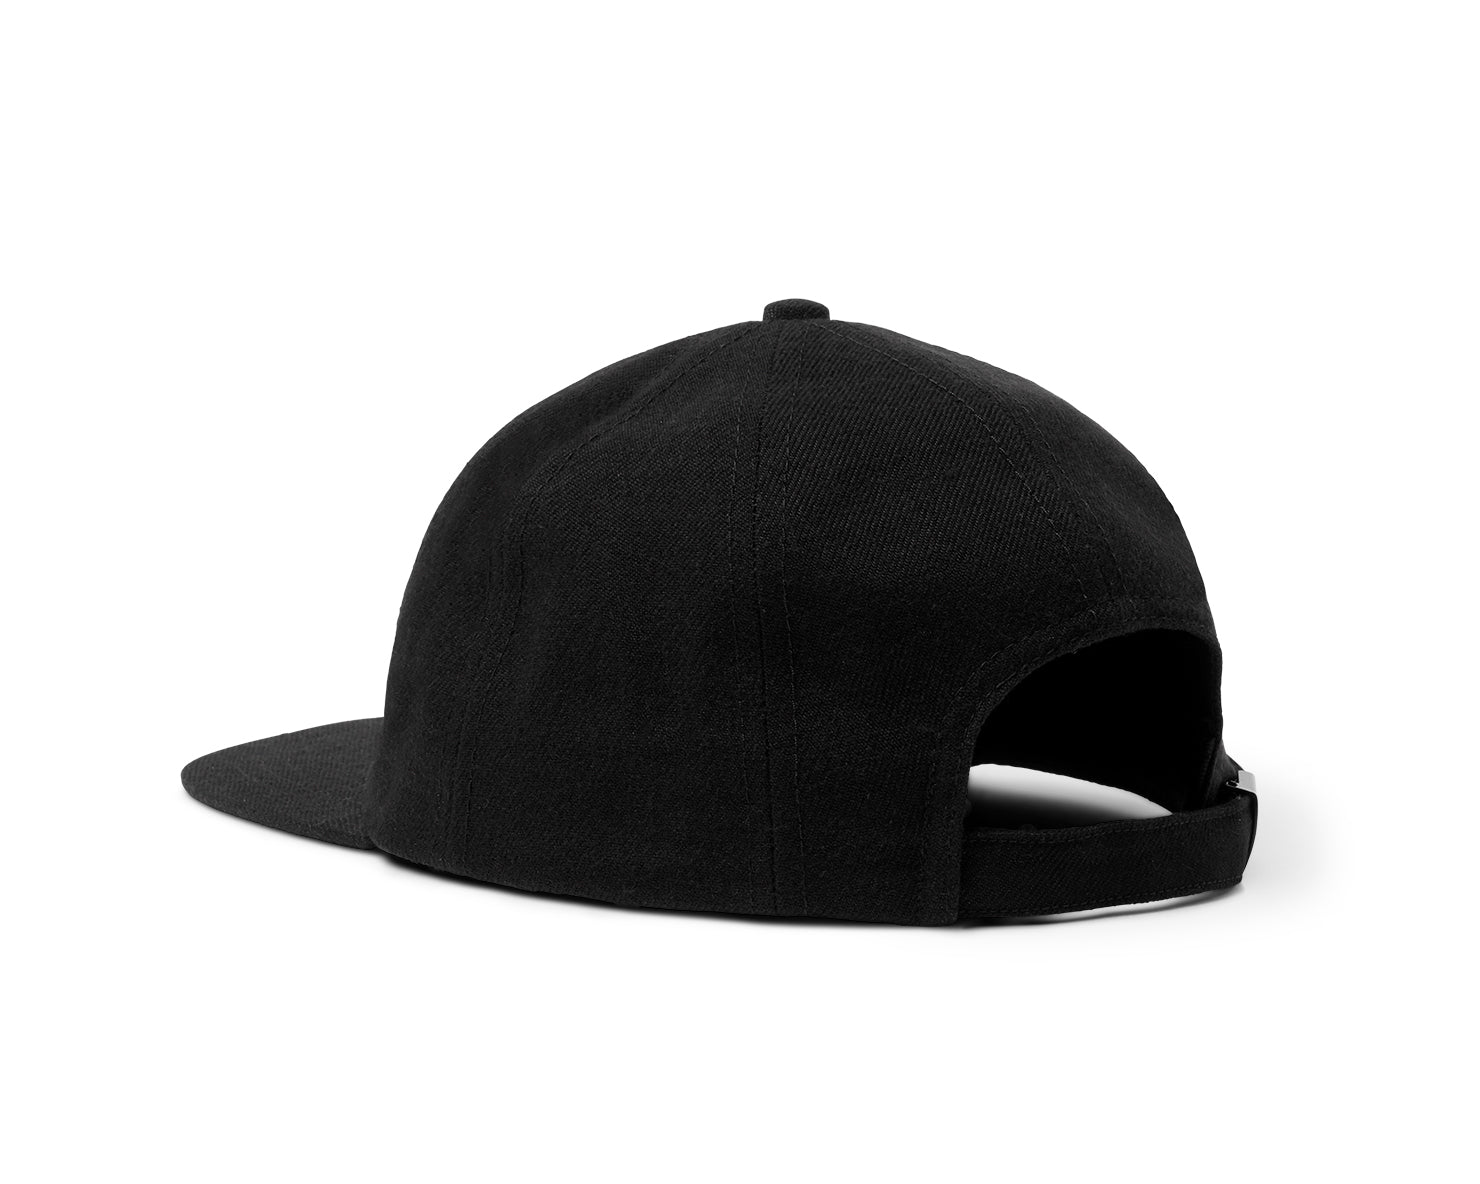 BLM 8 PANEL HAT | KILLSPENCER® - Black Wool